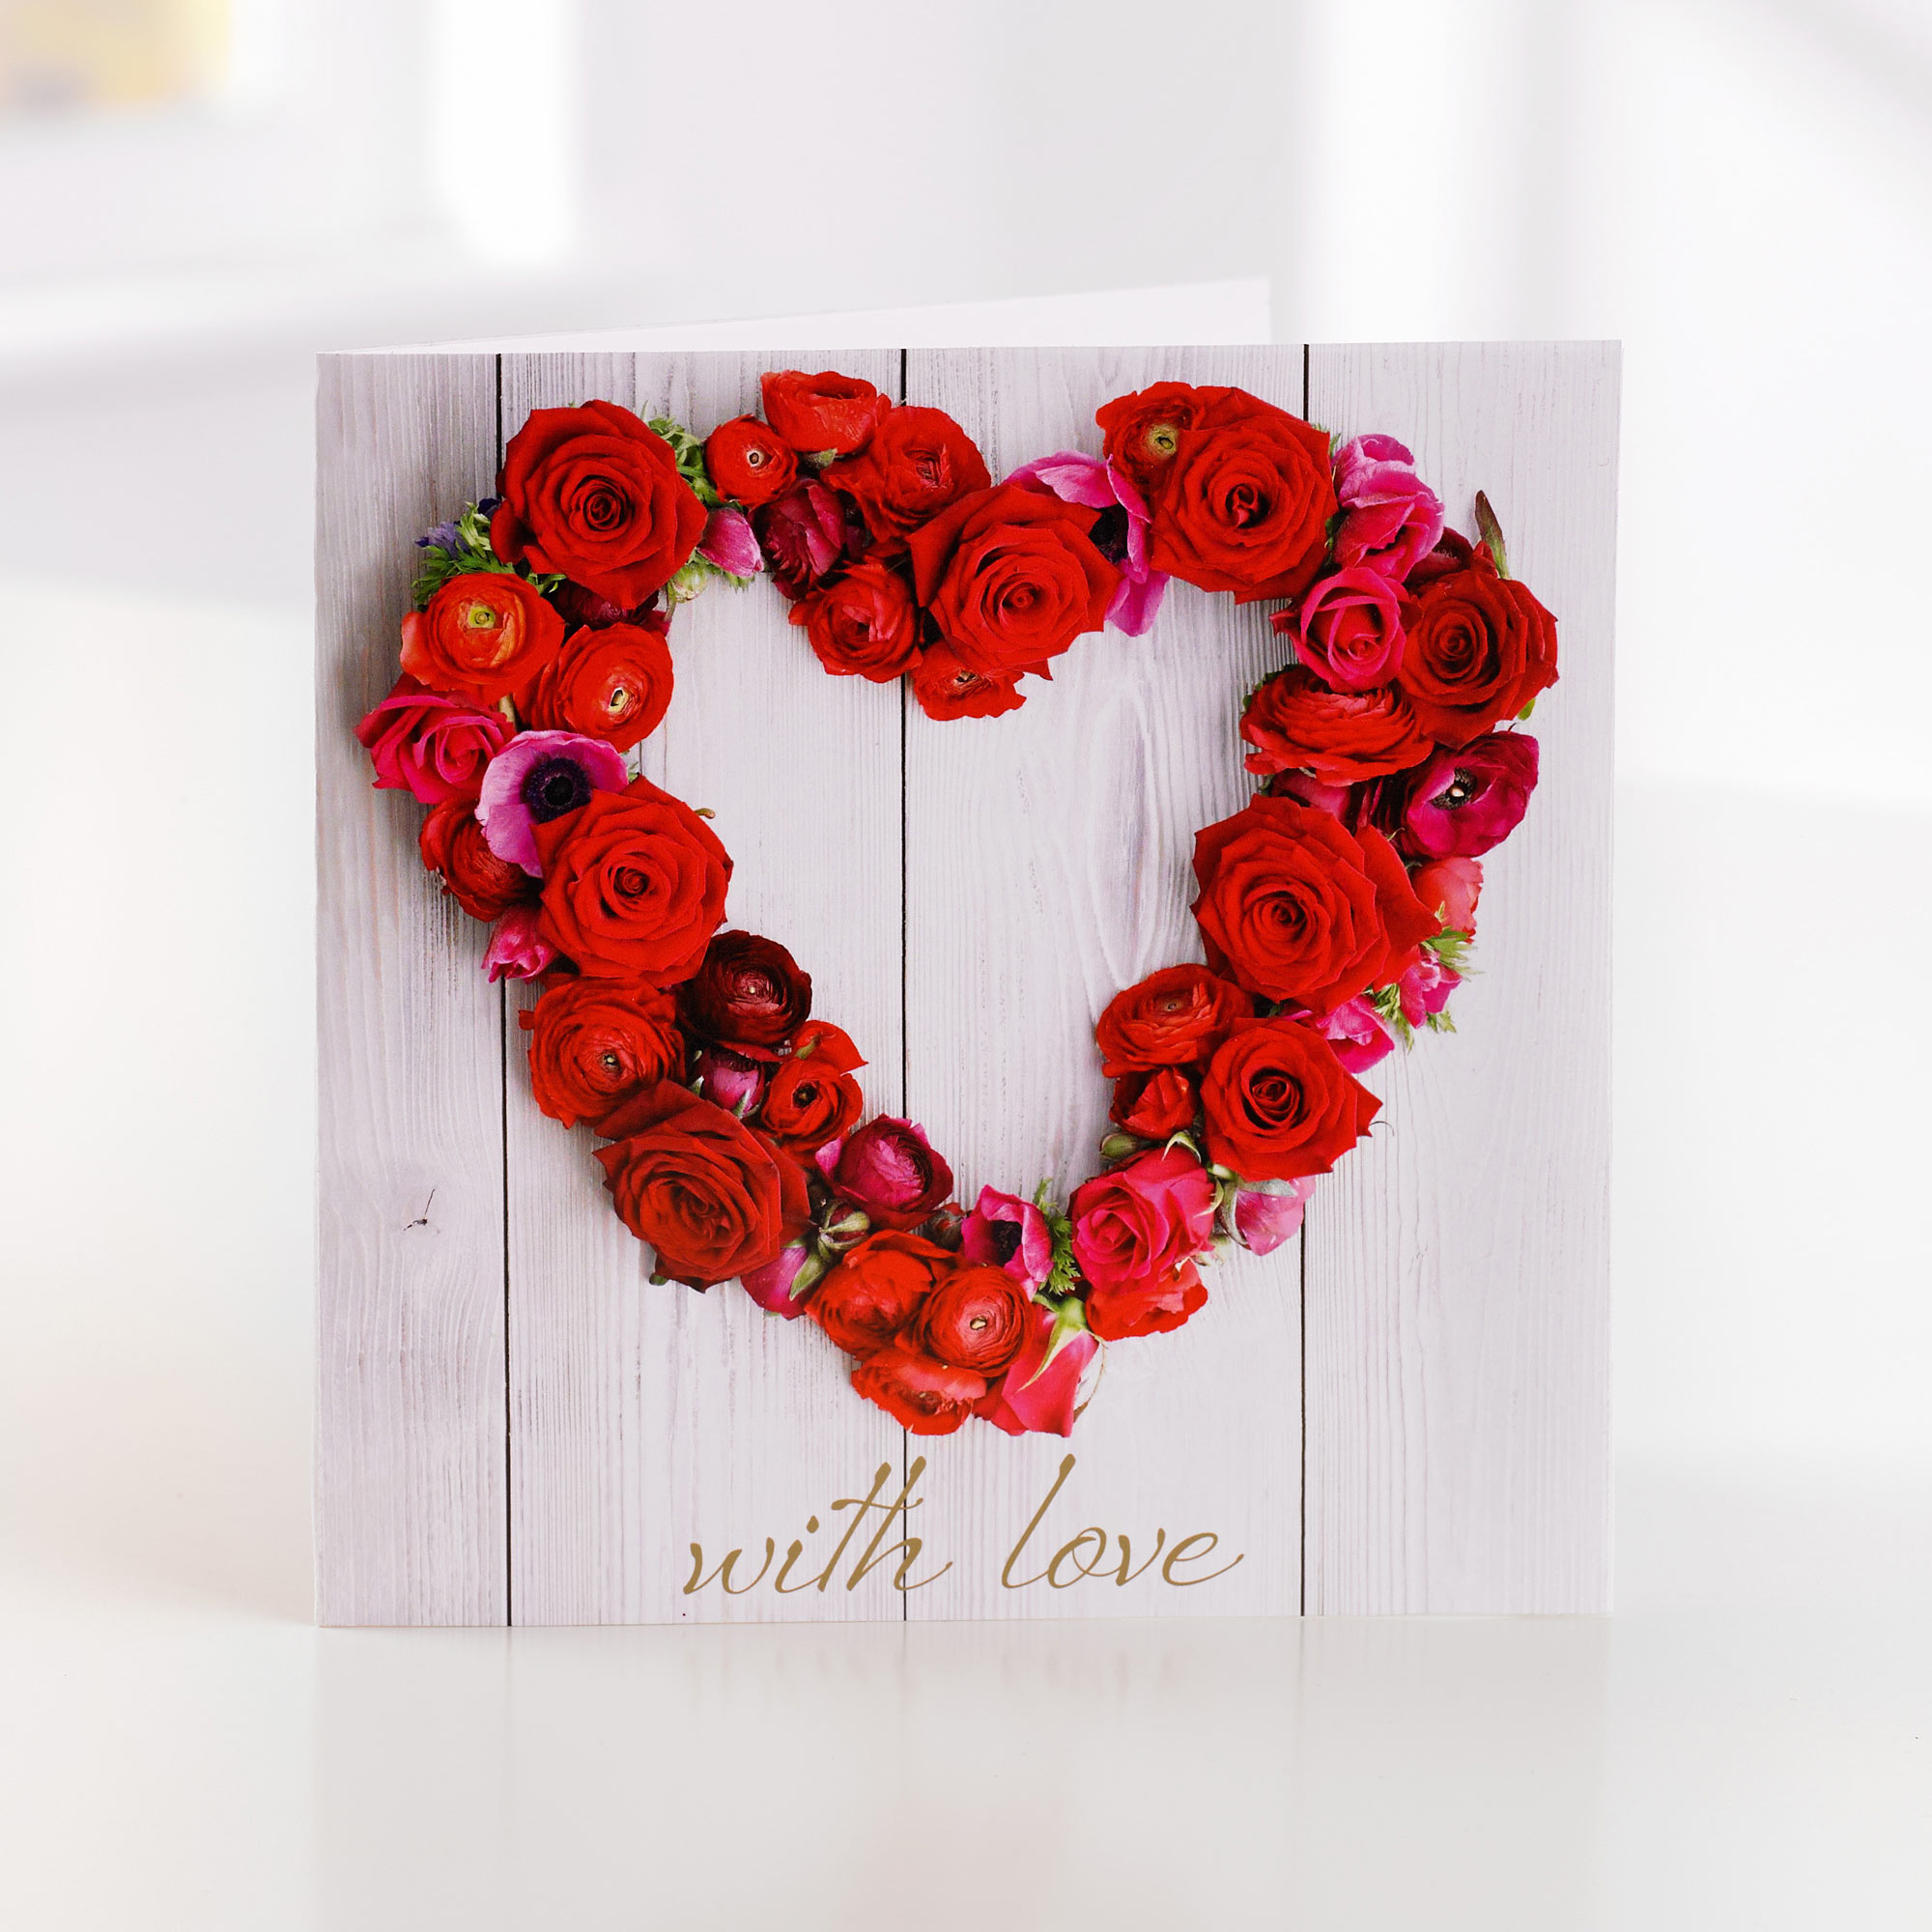 With love greetings card sweeneys florist with love greetings card kristyandbryce Image collections